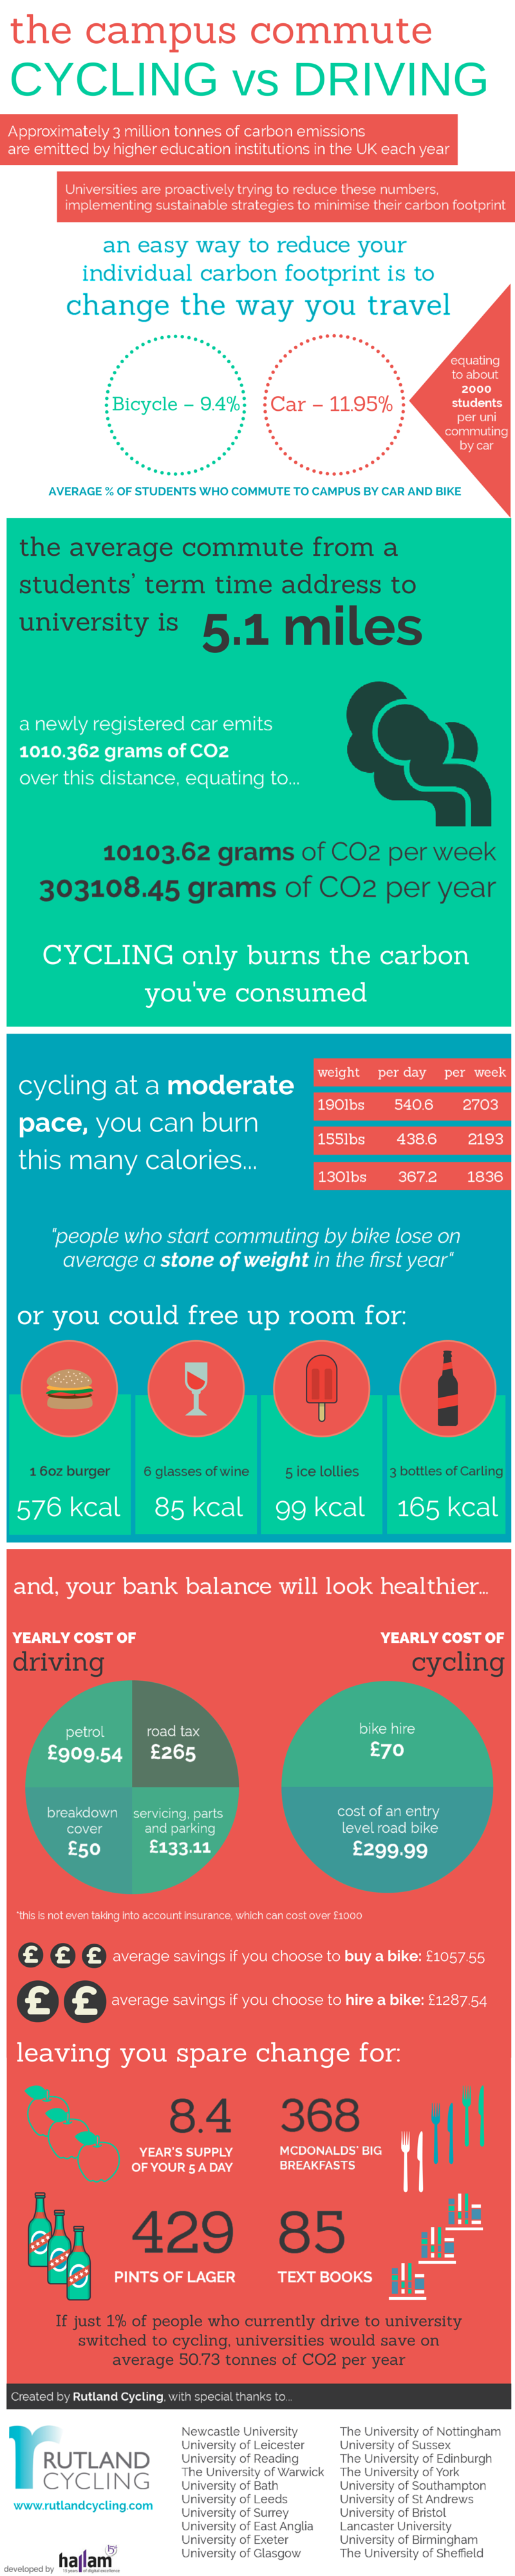 The Campus Commute Infographic